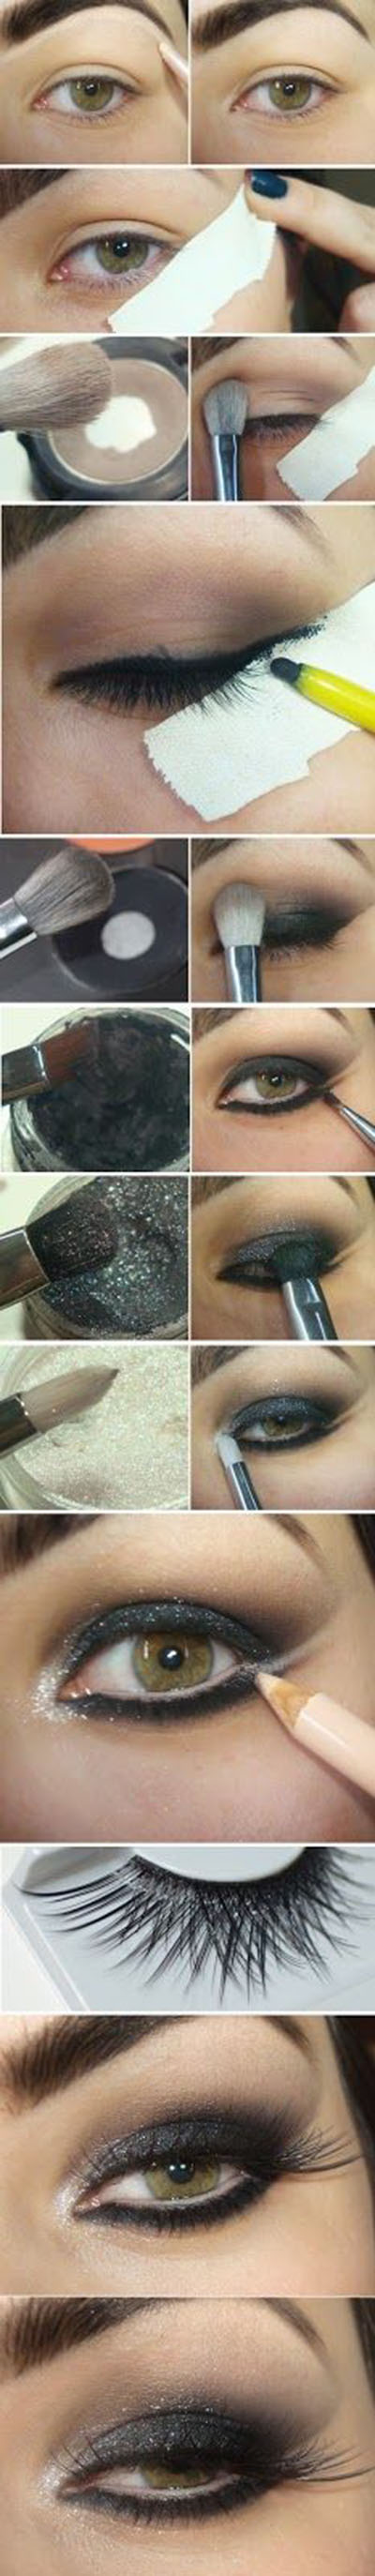 23 Black Shine Cat Eye Makeup Tutorials28eda